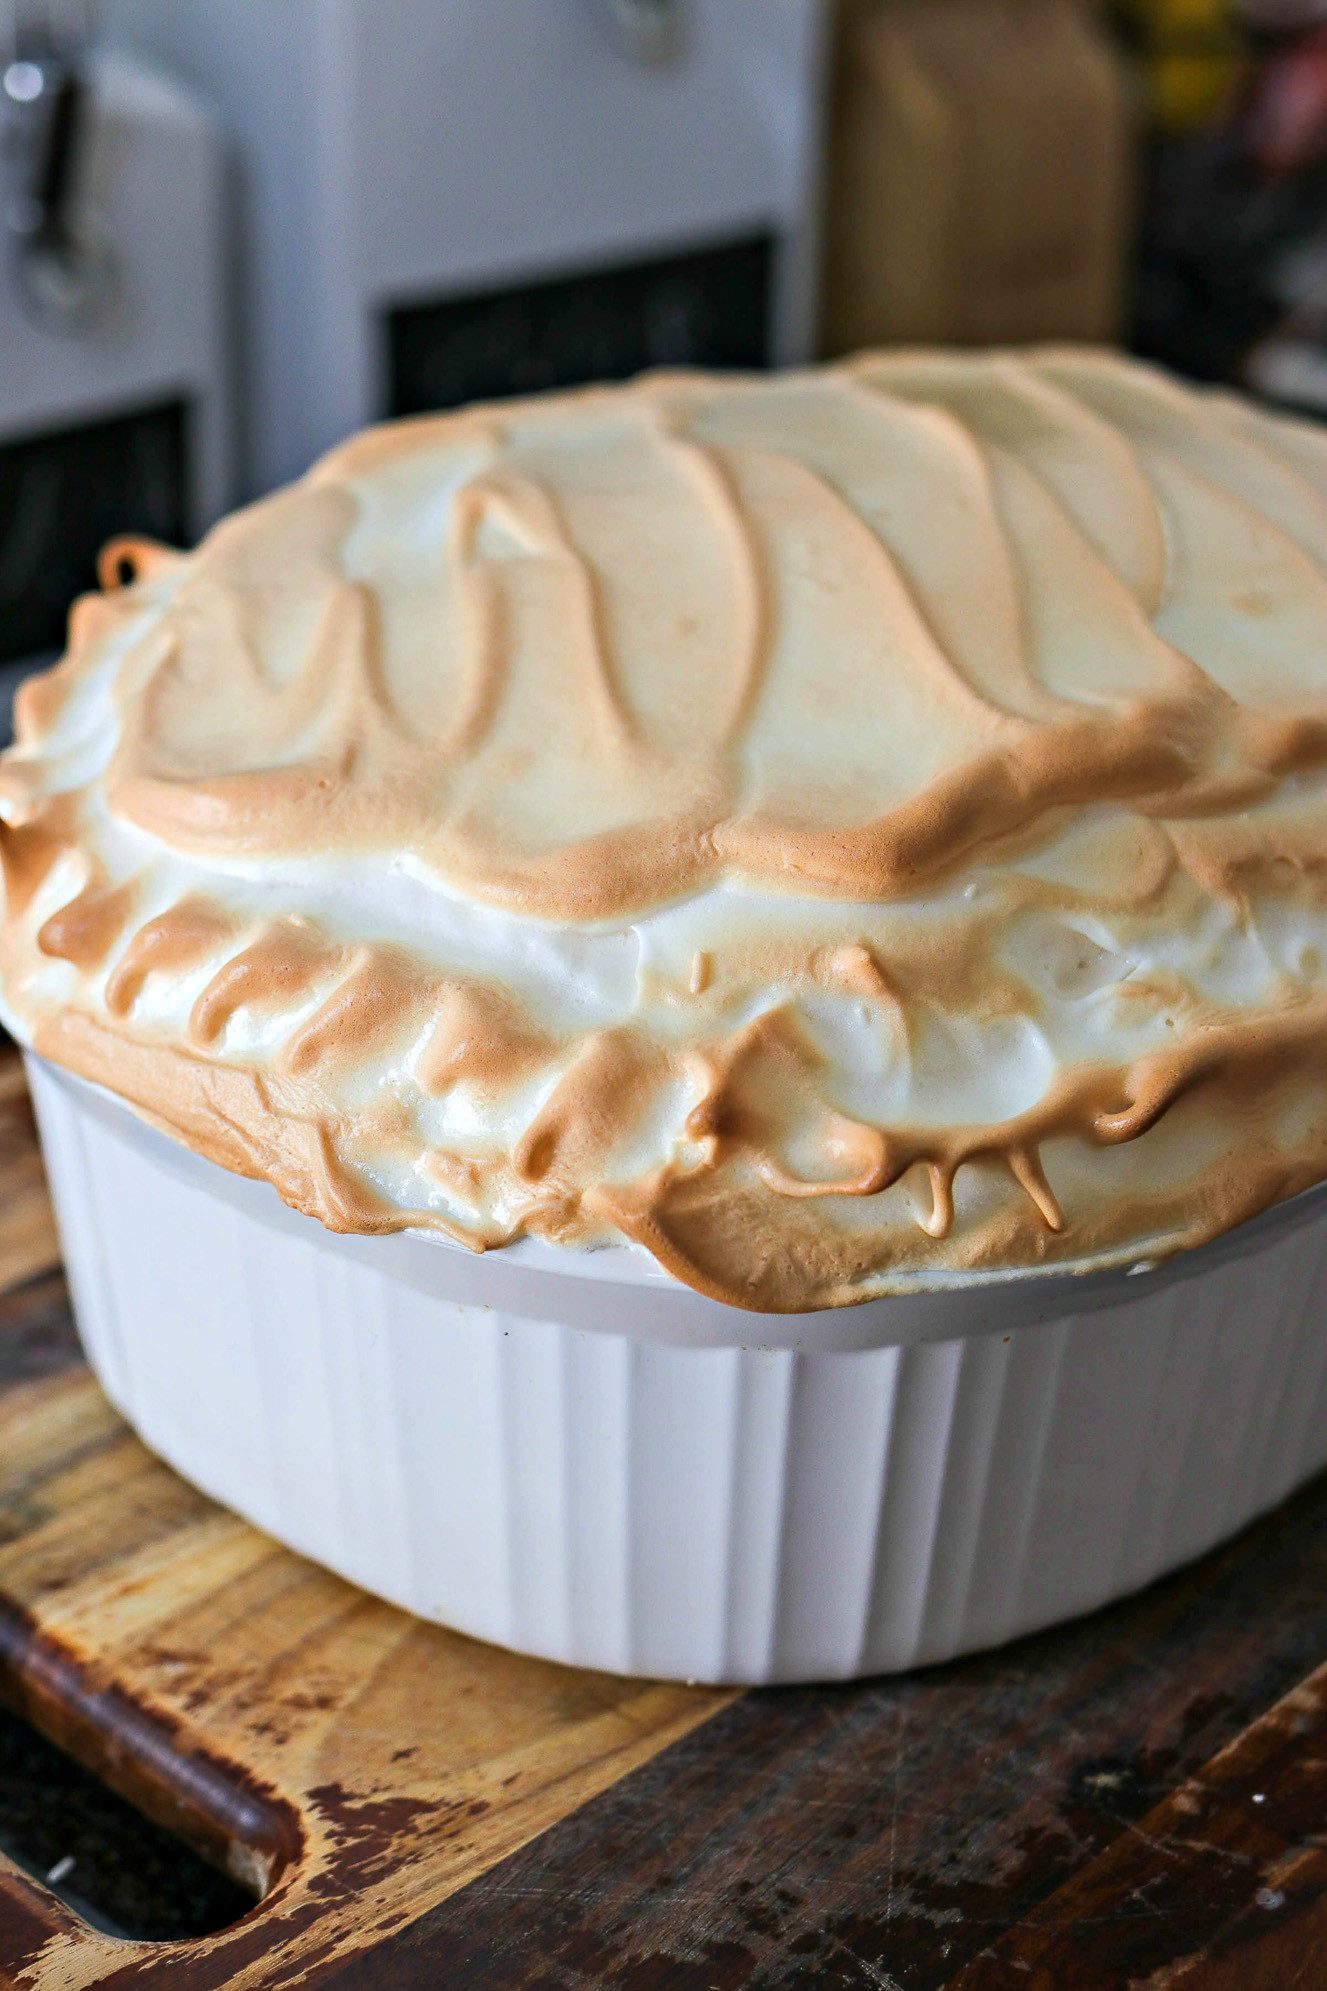 Warm Banana Pudding - Made with pound cake, homemade vanilla pudding, sliced bananas and topped with toasted meringue, this Southern warm banana pudding taste so velvety smooth that you'll never want to make another banana pudding ever again!